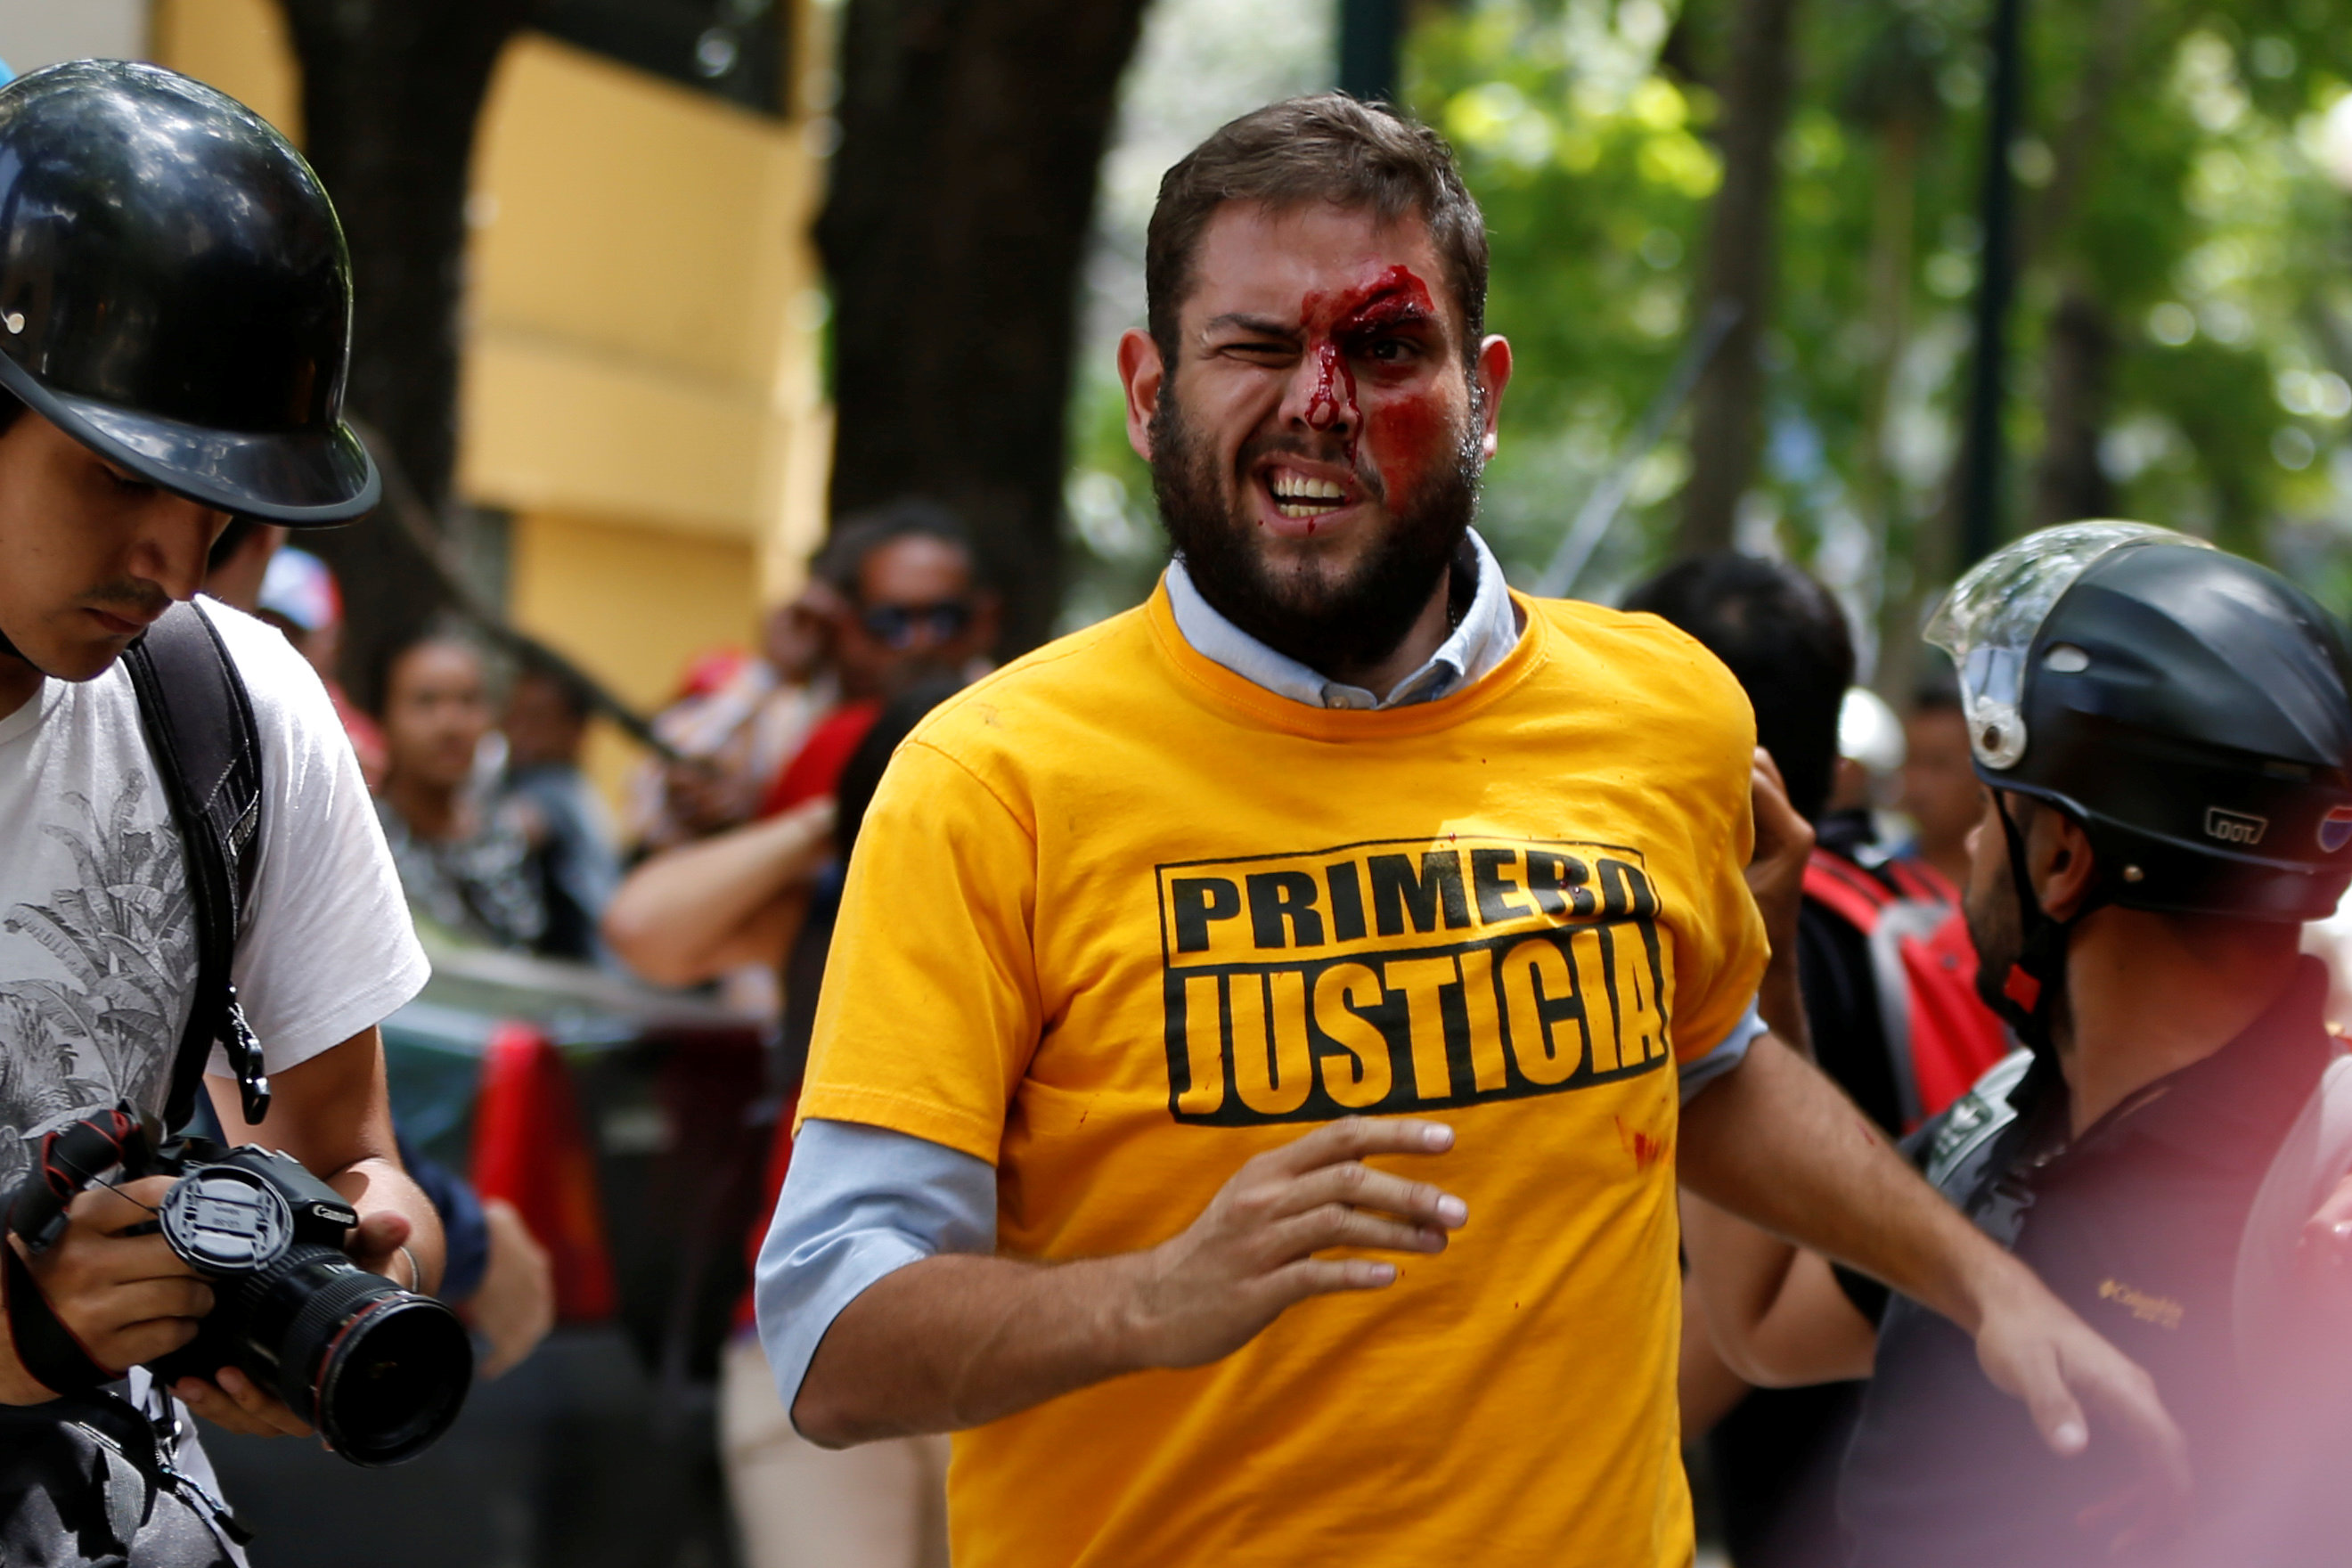 ATTENTION EDITORS - VISUAL COVERAGE OF SCENES OF INJURY OR DEATH   Juan Requesens (C), deputy of the Venezuelan coalition of opposition parties (MUD), reacts after been injured during clashes with pro-government supporters outside the offices of the Venezuela's ombudsman in Caracas, Venezuela April 3, 2017. REUTERS/Carlos Garcia Rawlins   TEMPLATE OUT     TPX IMAGES OF THE DAY